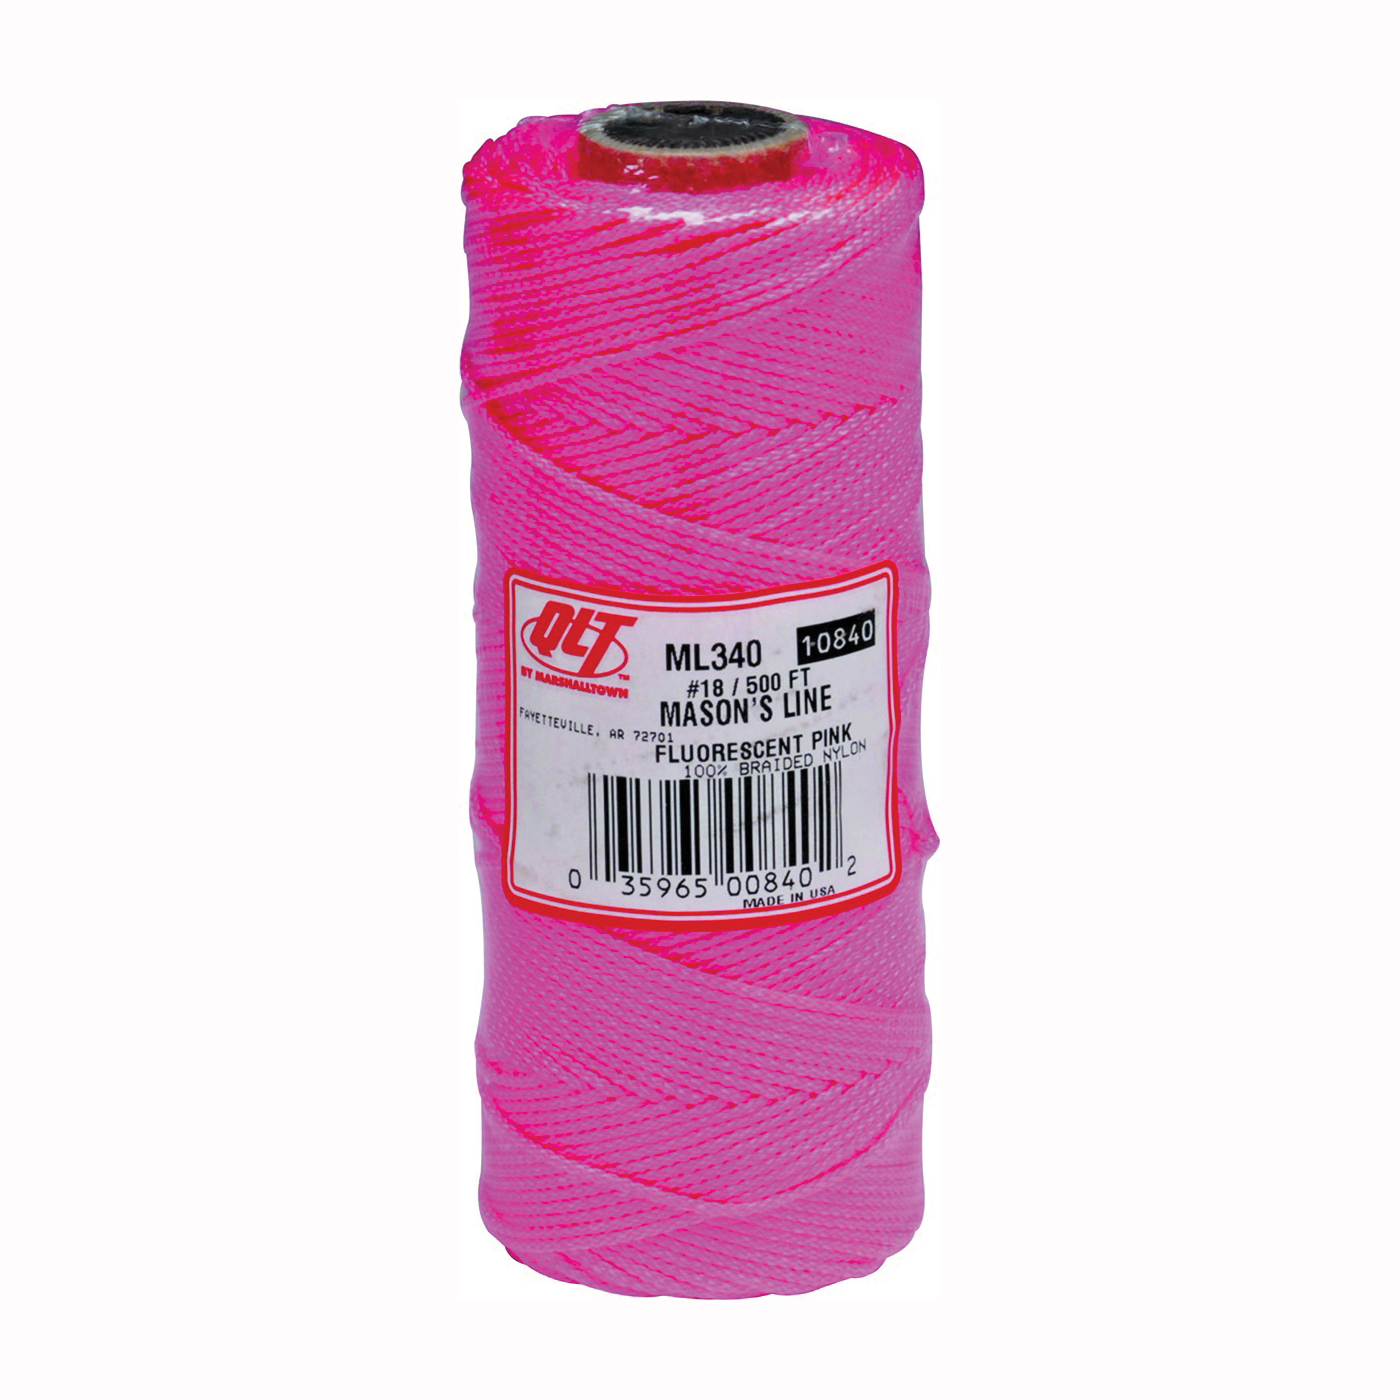 Picture of Marshalltown ML340 Mason Line, 500 ft L Line, Fluorescent Pink Line